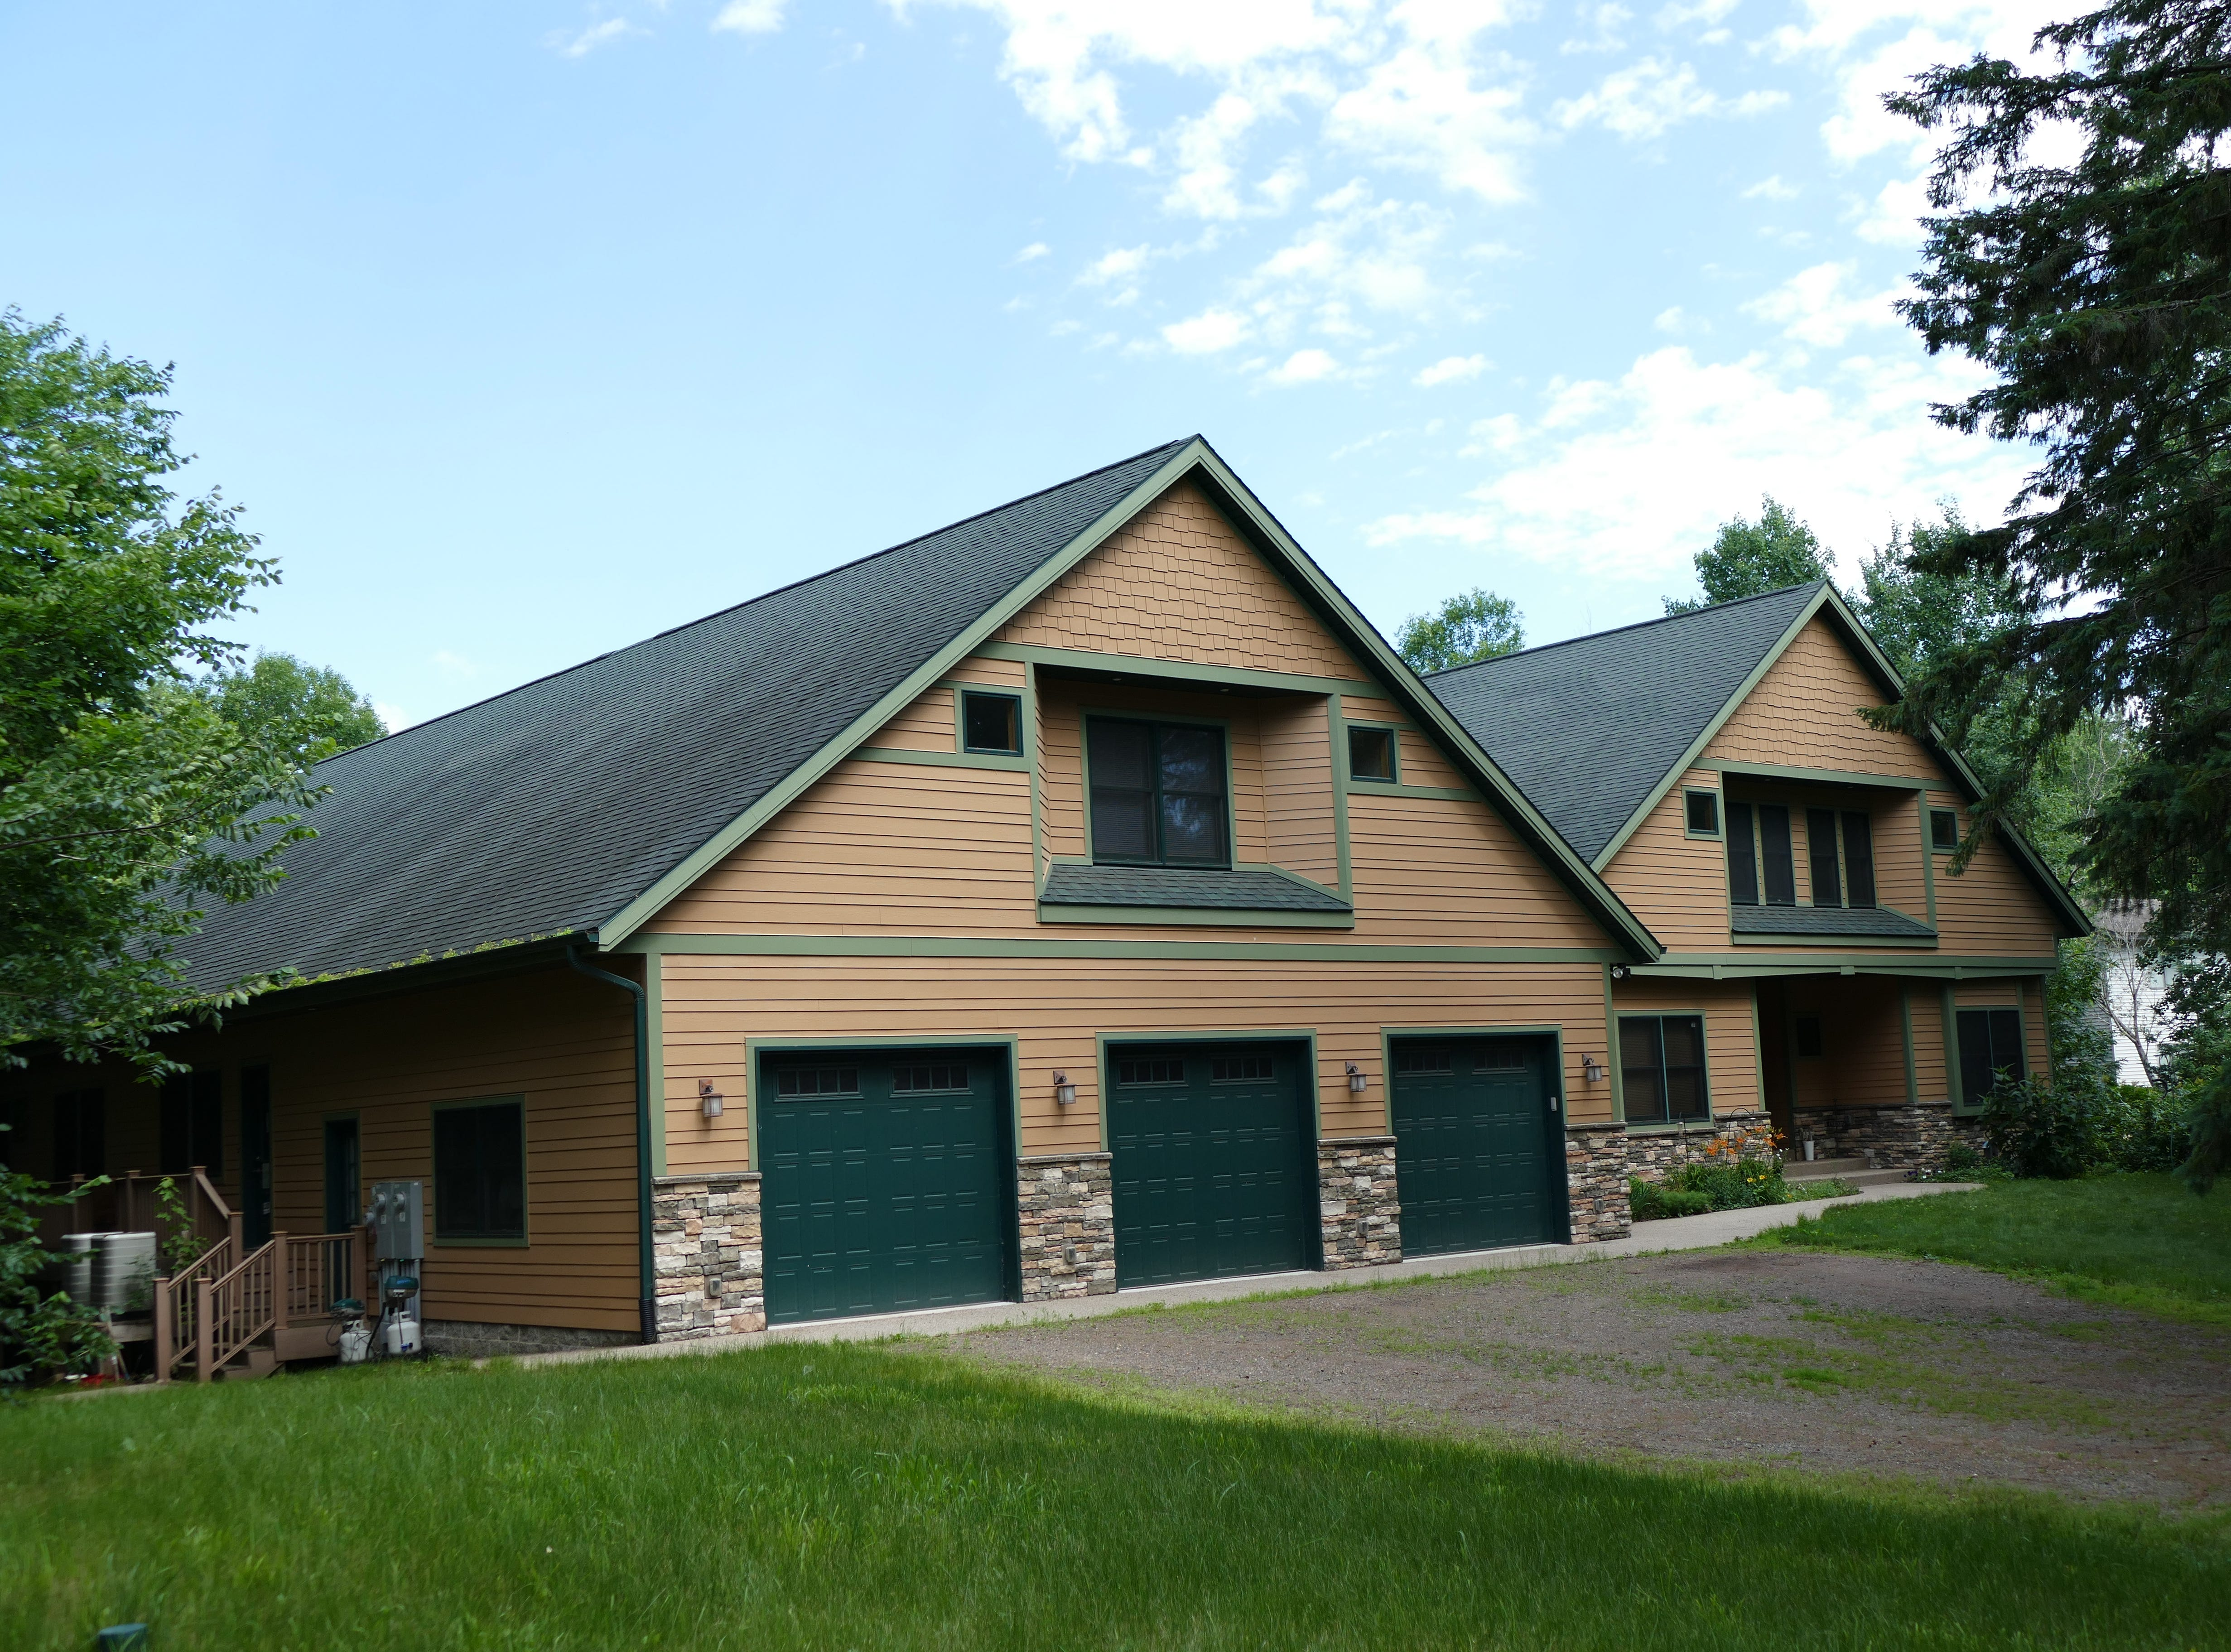 This property is located at 11480 West Lake Road, Rice and is listed for $999,999 by Jason Meyer of Bridge Realty.